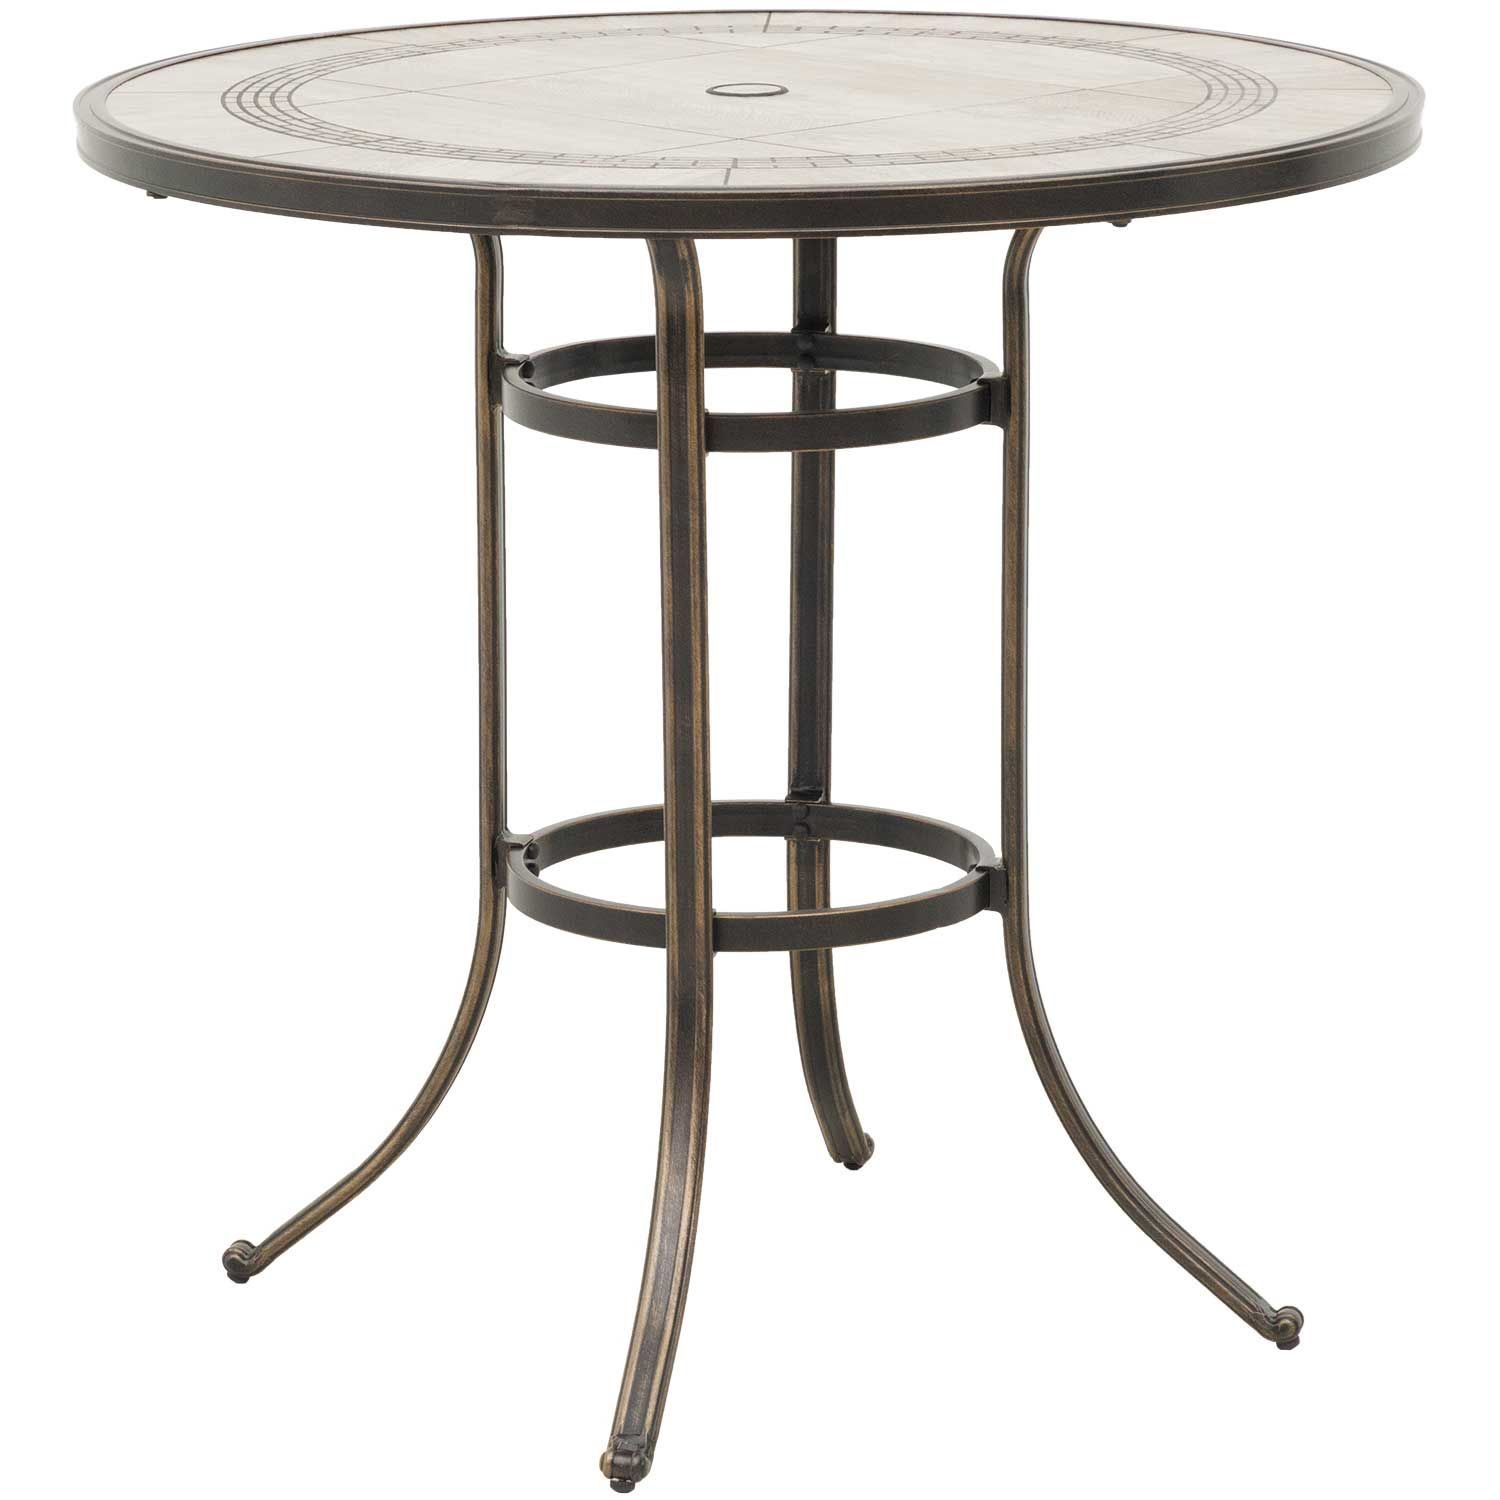 Barnwood 42 Round Tile Top Patio Bar Table  TR42B T6 BARNWD  World Source International  AFW